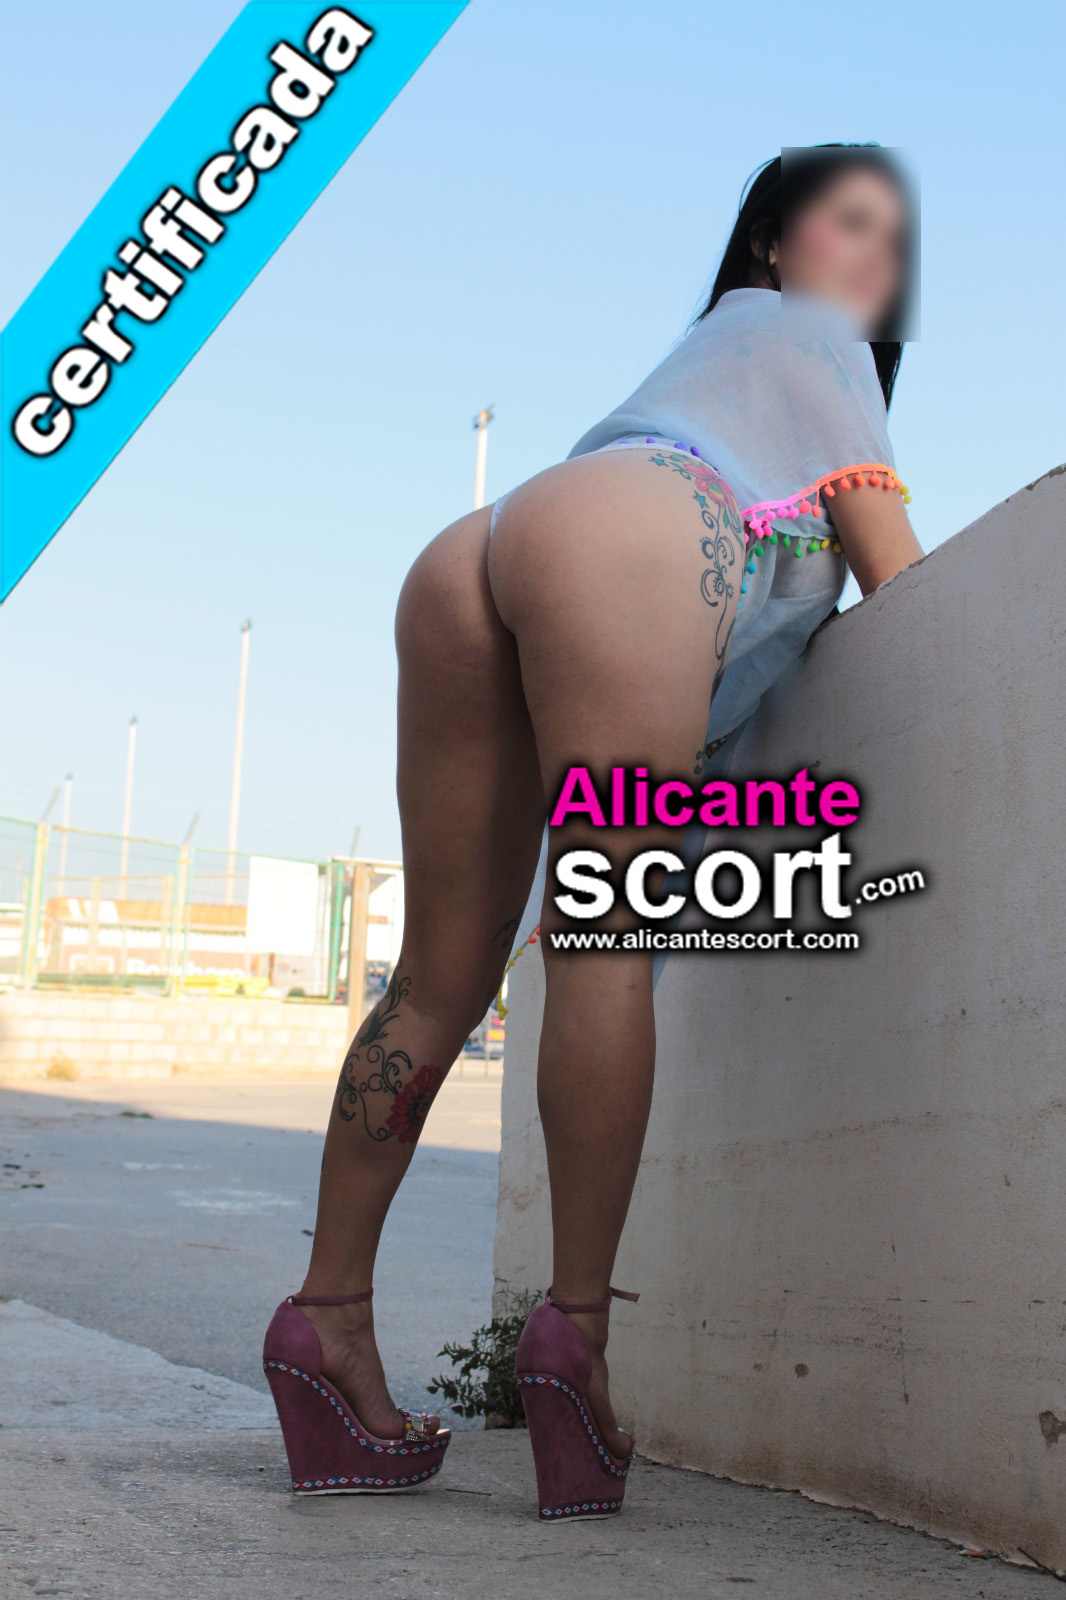 CATALINA Putas Alicante y Escorts en Alicante